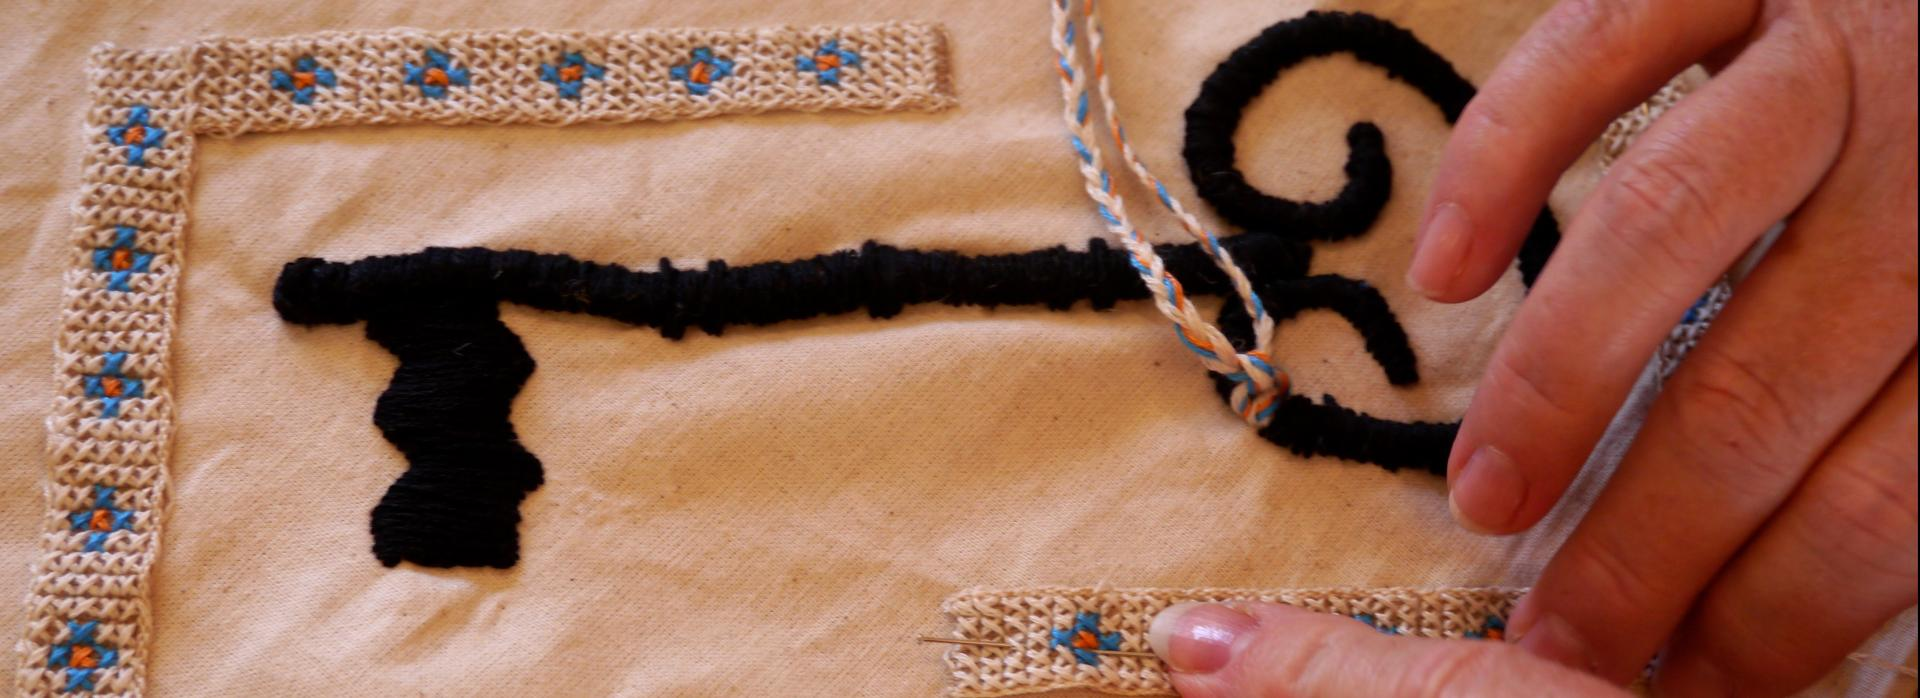 a close-up of two hands working on an embroidery of a key